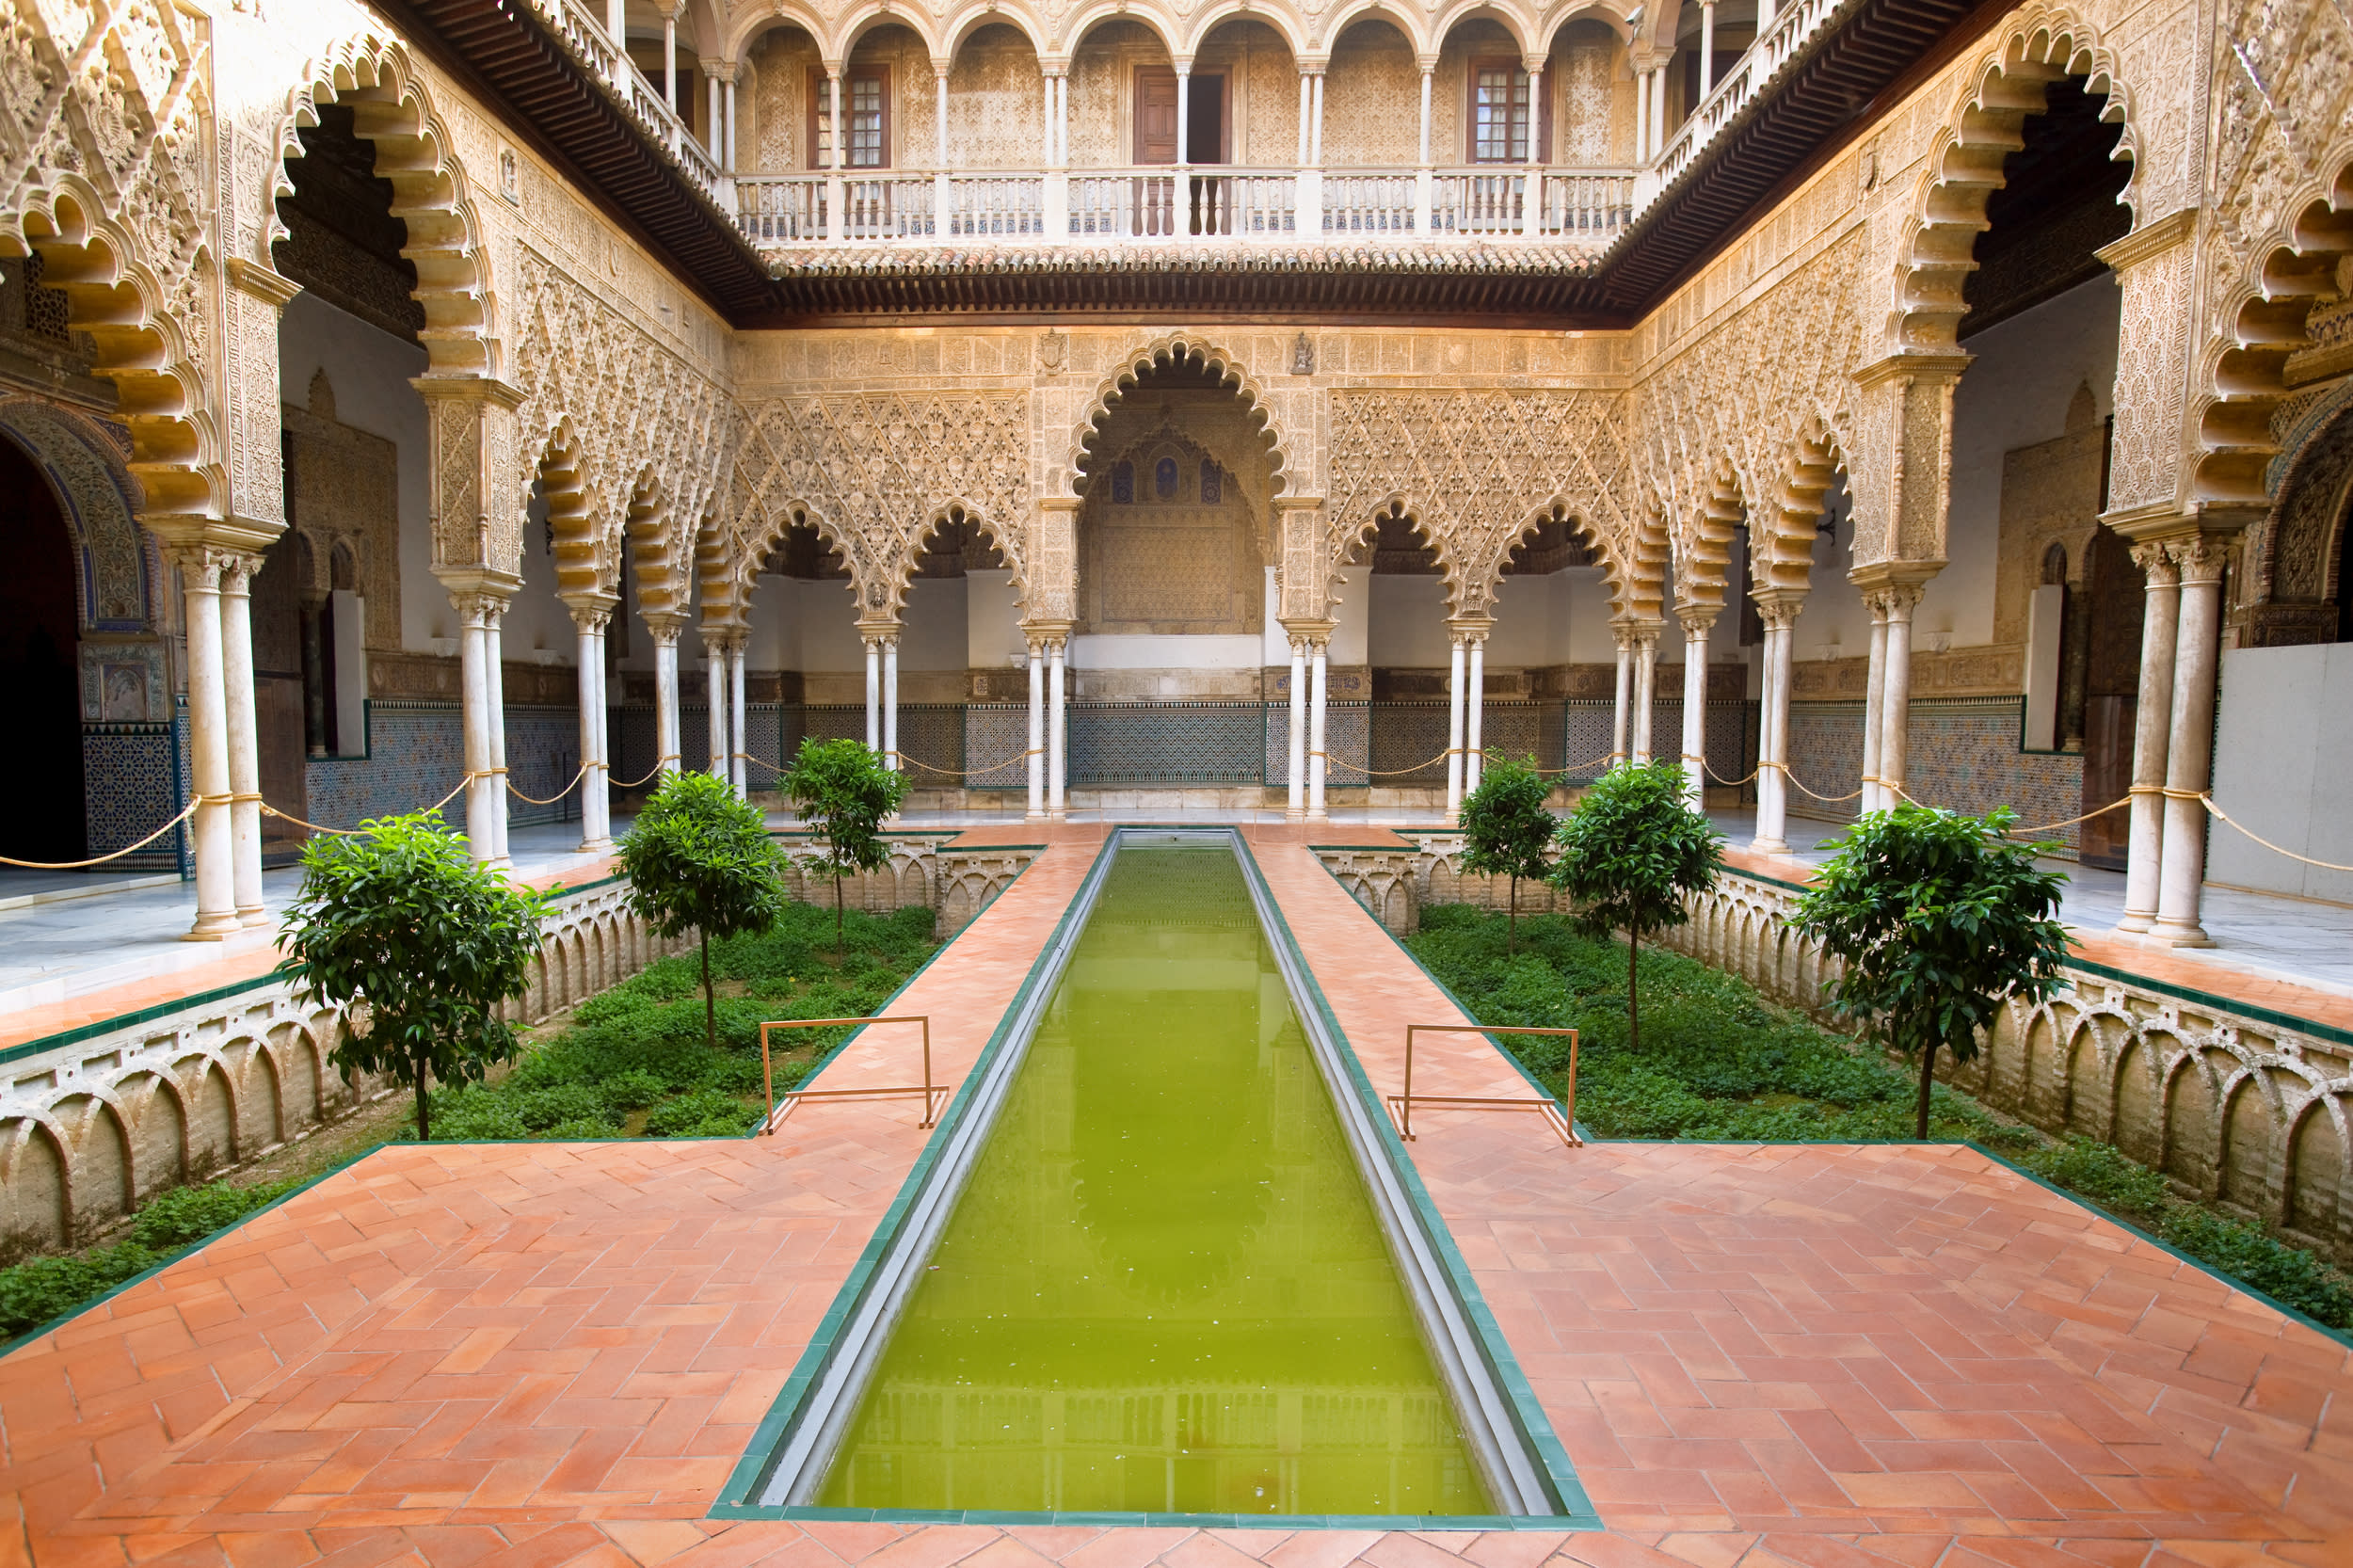 """<p><strong>GOT location</strong>: Royal Palace Of Dorne</p>  <p><strong>Real life location</strong>: Real Alcázar Palace, Seville, Spain</p>  <p>Feel like you're at the southern most point of Westeros by visitingReal Alcázar Palace in Spain AKA Dorne.</p>  <p><a href=""""https://fave.co/2GsavbS""""><strong>Book your trip.</strong></a></p>"""